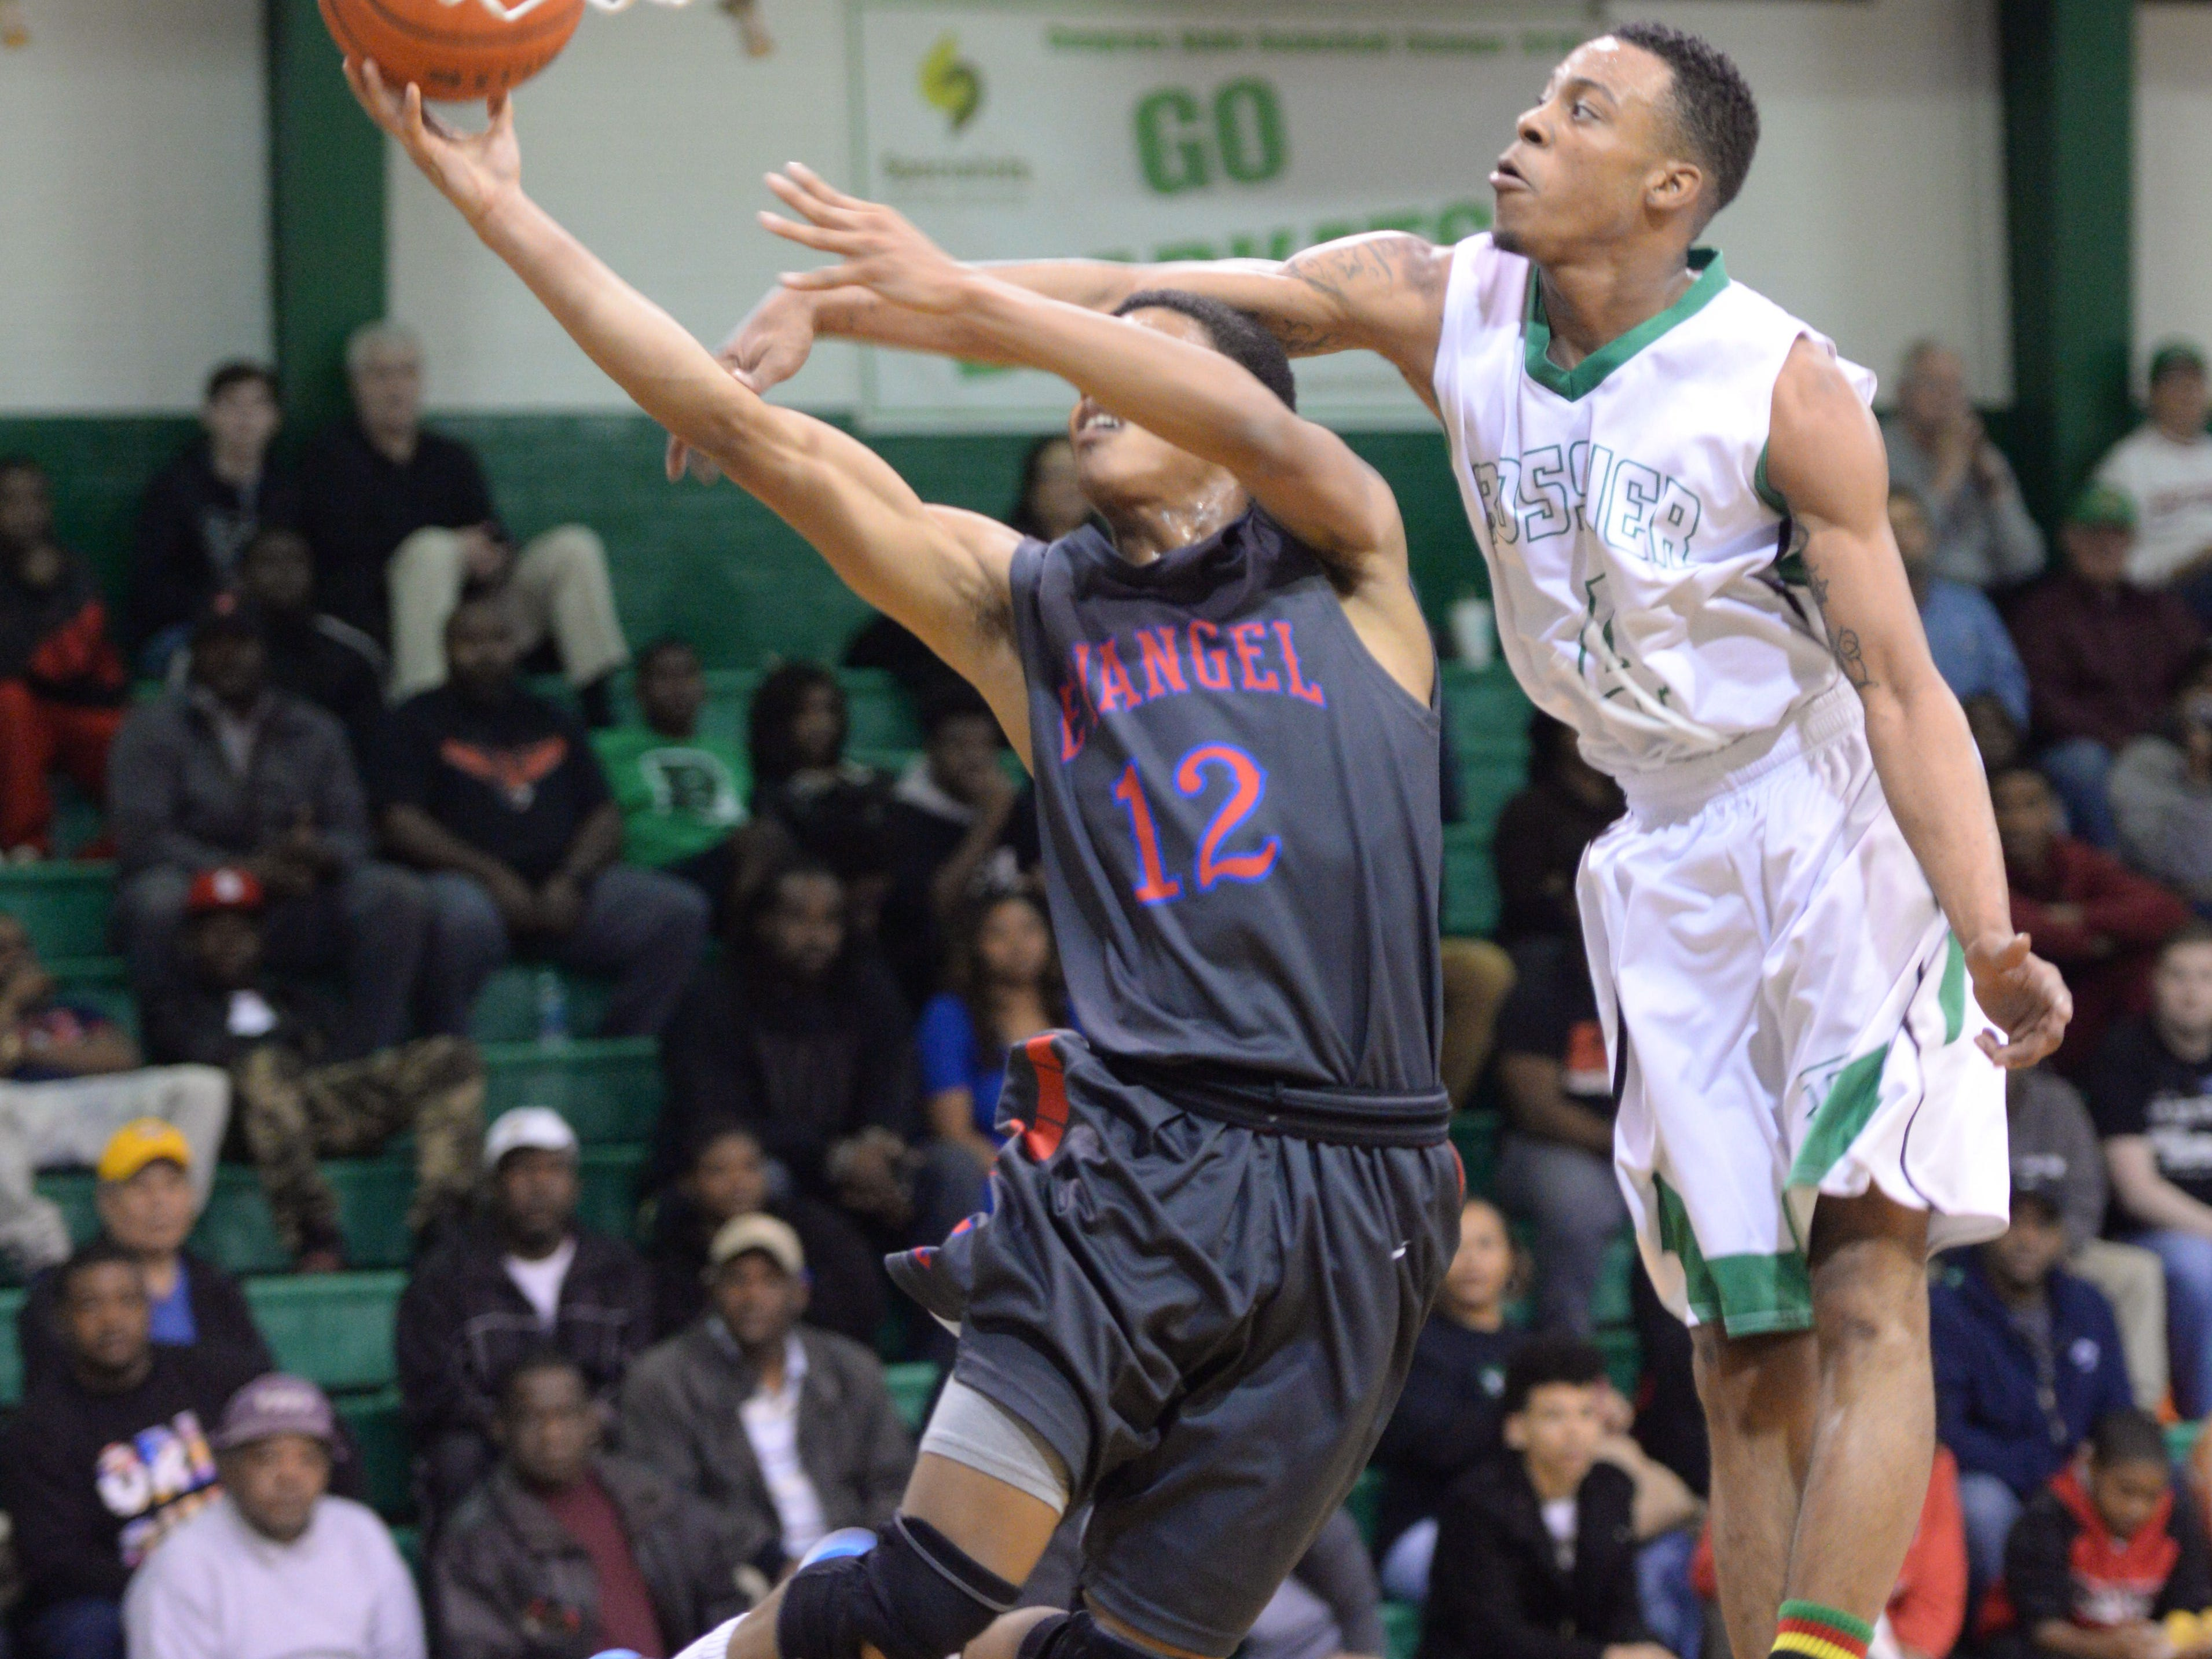 Bossier's Kentrell Hardy fouls Tim Stokes of Evenagel during Bossier's 54-37 win Tuesday night.